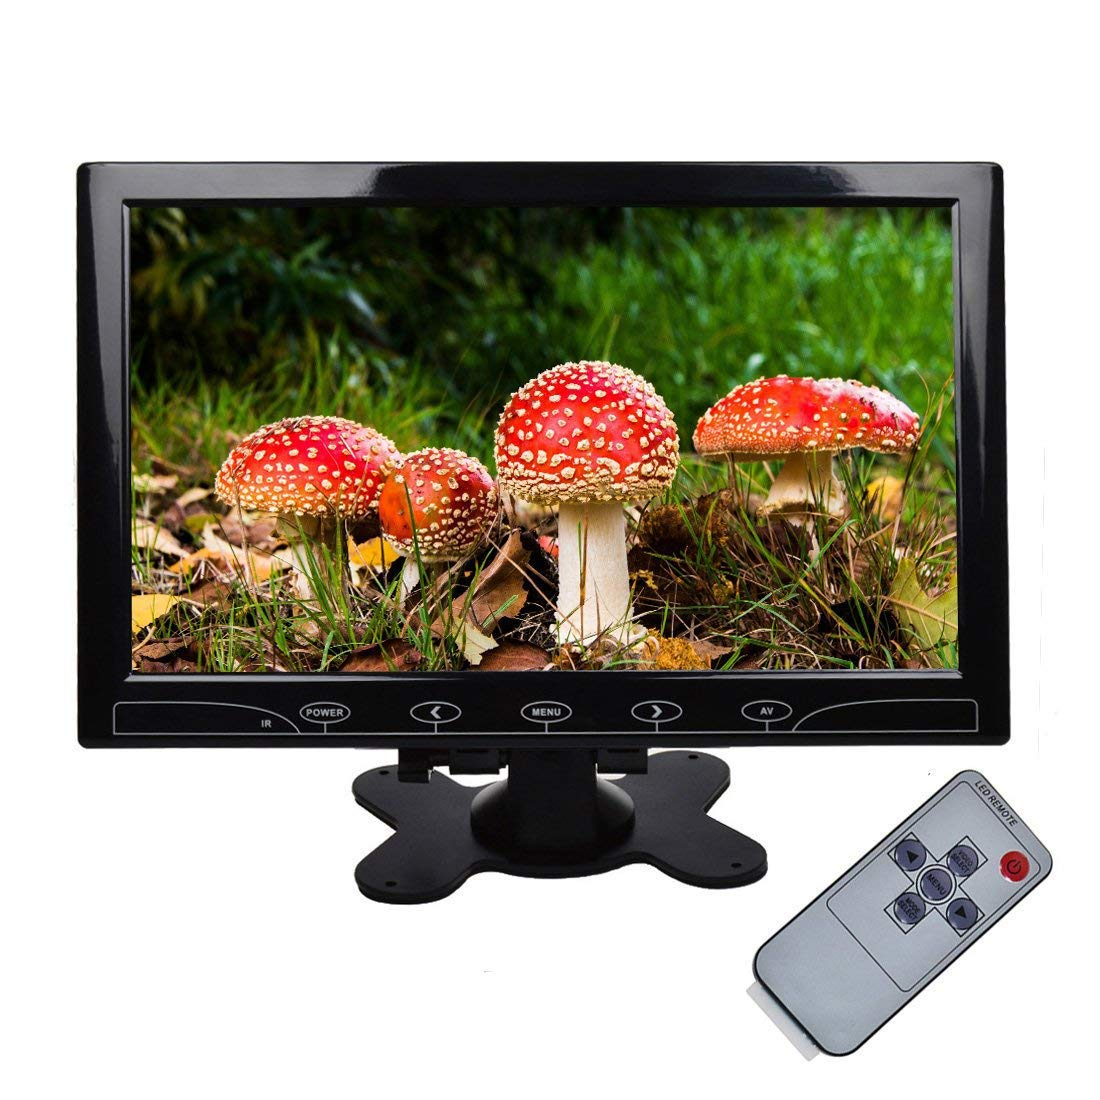 TOGUARD 10.1'' Inch Ultrathin Color Security CCTV Monitor 1024x600 Resolution Touch Buttons Video and Audio LED Display Screen with Remote Control AV/VGA/HDMI Input